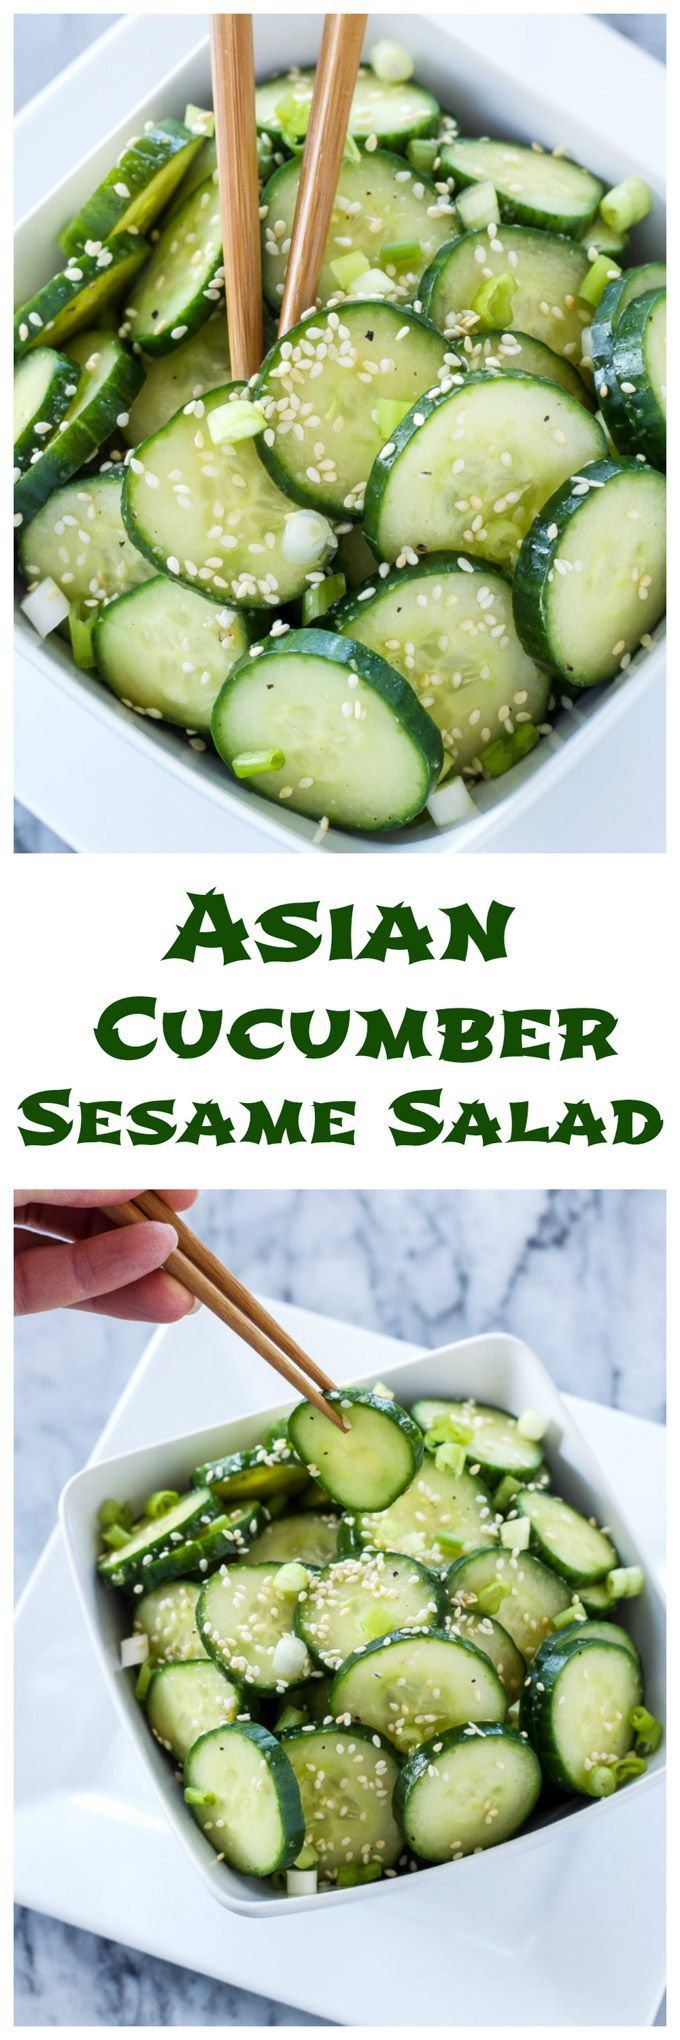 "Asian Cucumber And Sesame Salad Recipe. I am still trying to find a recipe that comes close to the Shanghai Cucumber dish at PF Chang's. I just found this on another website and here is what the chef had to say: ""I am experimenting with cucumbers since I ate this cucumber thing at PF Chang's."